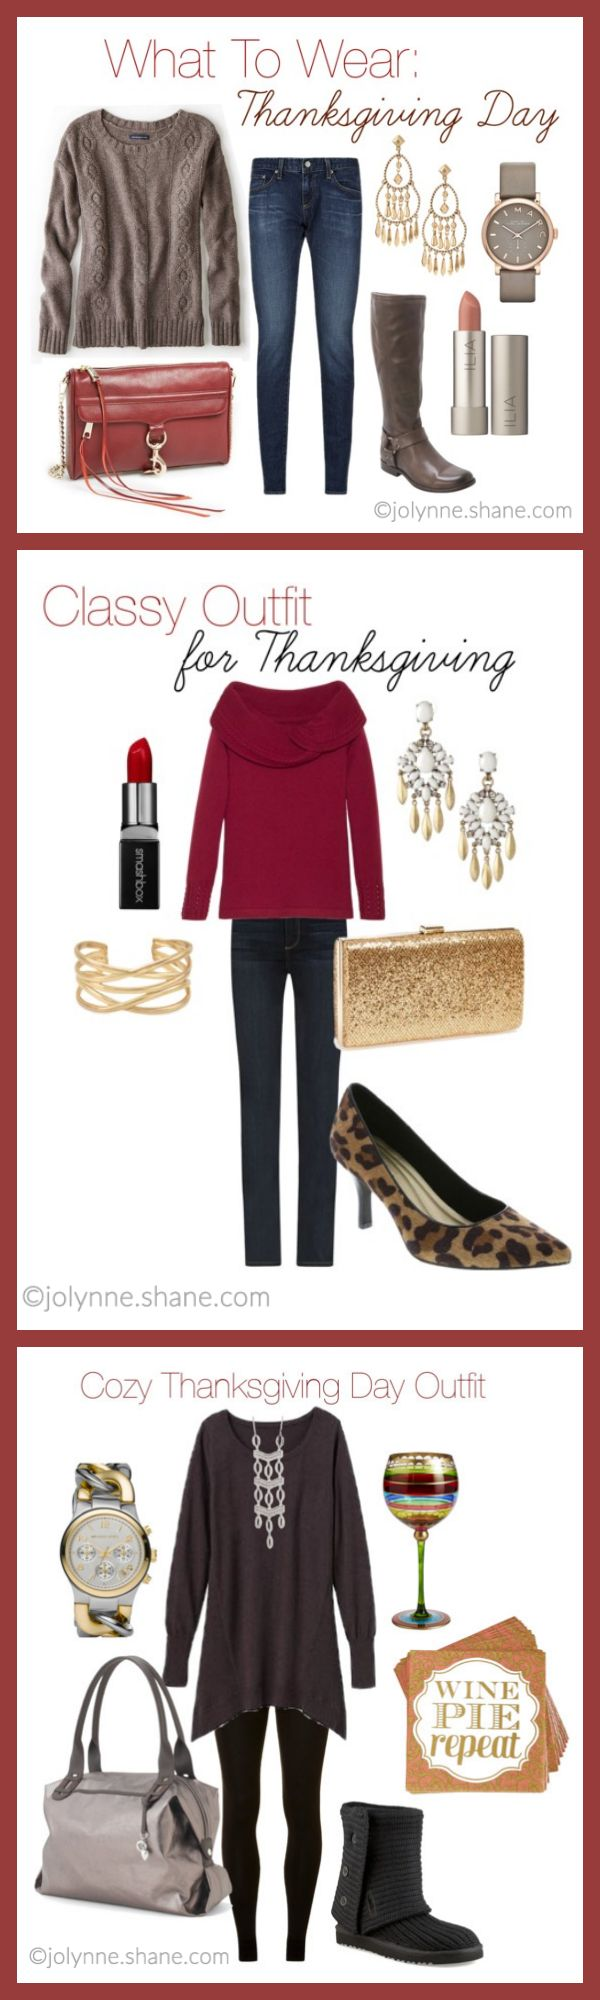 Casual Outfit for Thanksgiving Day plus TWO MORE Thanksgiving outfit ideas! Three fashion bloggers are sharing what to wear for Thanksgiving. Get some outfit inspiration AND enter for a chance to WIN a $250 gift card to Rack Room Shoes!